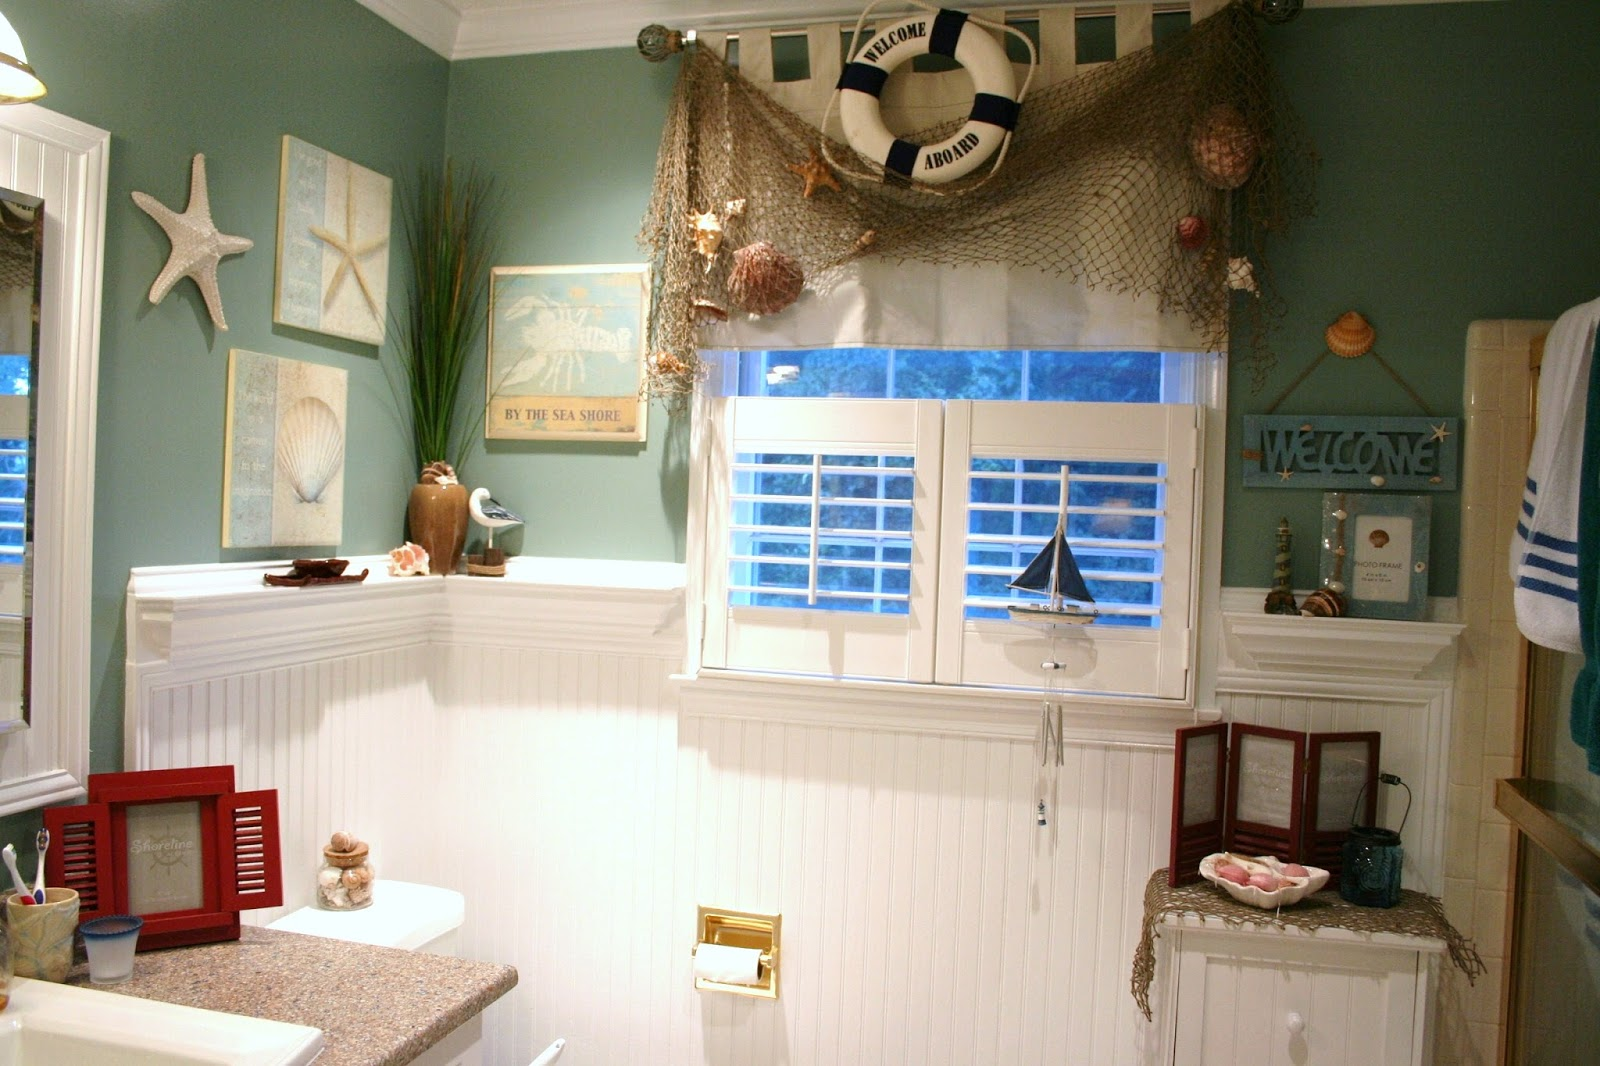 85 Ideas About Nautical Bathroom Decor: Bathroom Tiles